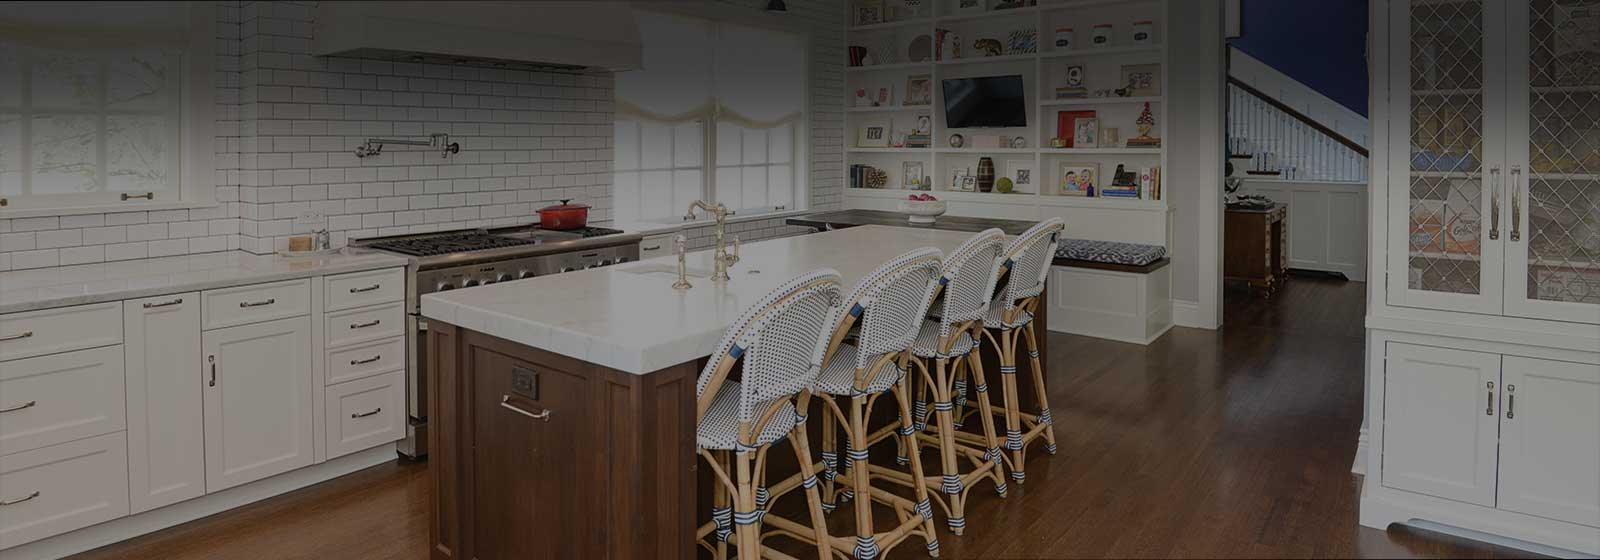 Elegant white kitchen transformation design photo in Kenilworth